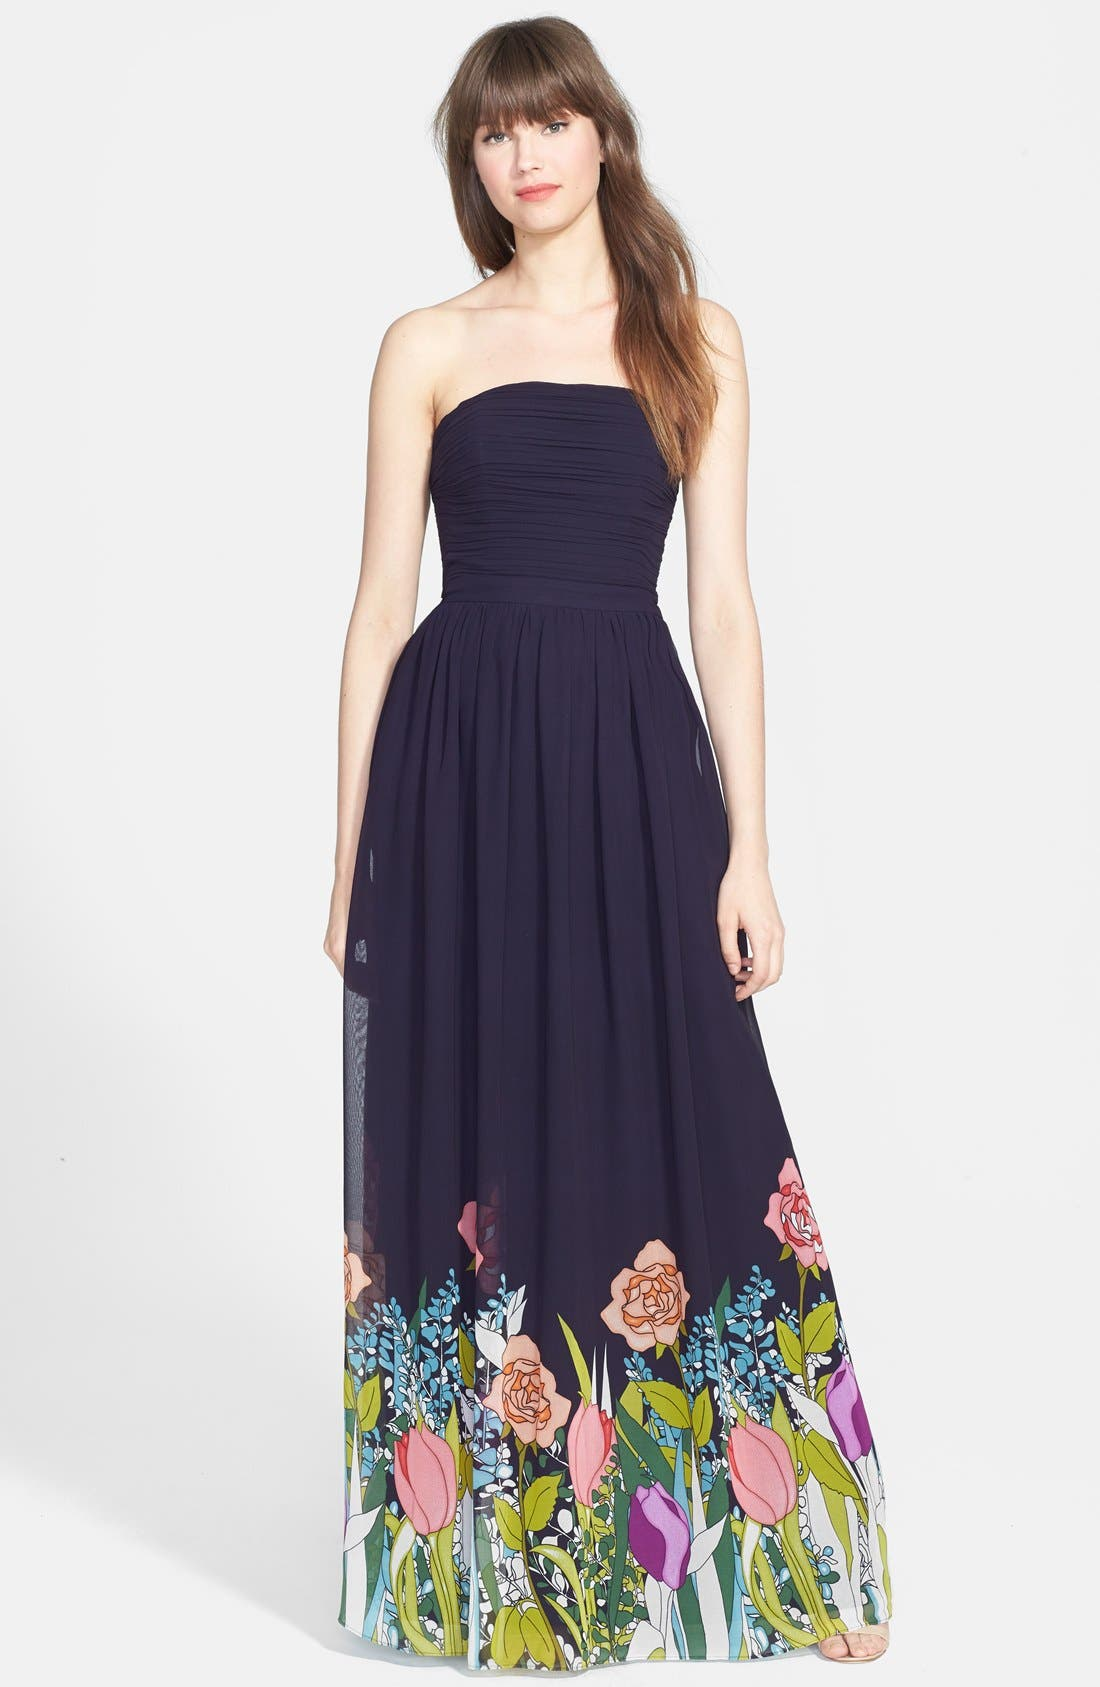 Alternate Image 1 Selected - ERIN erin fetherston 'Isabelle' Print Strapless Gown